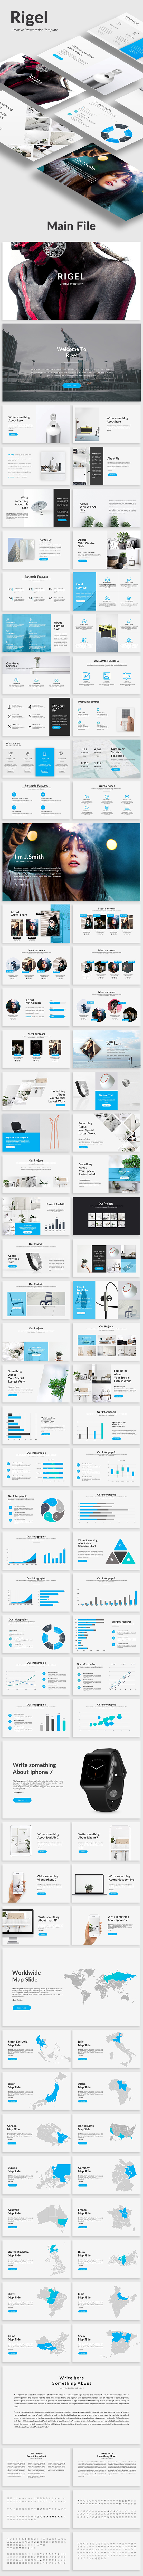 Rigel - Creative Powerpoint Template - Creative PowerPoint Templates